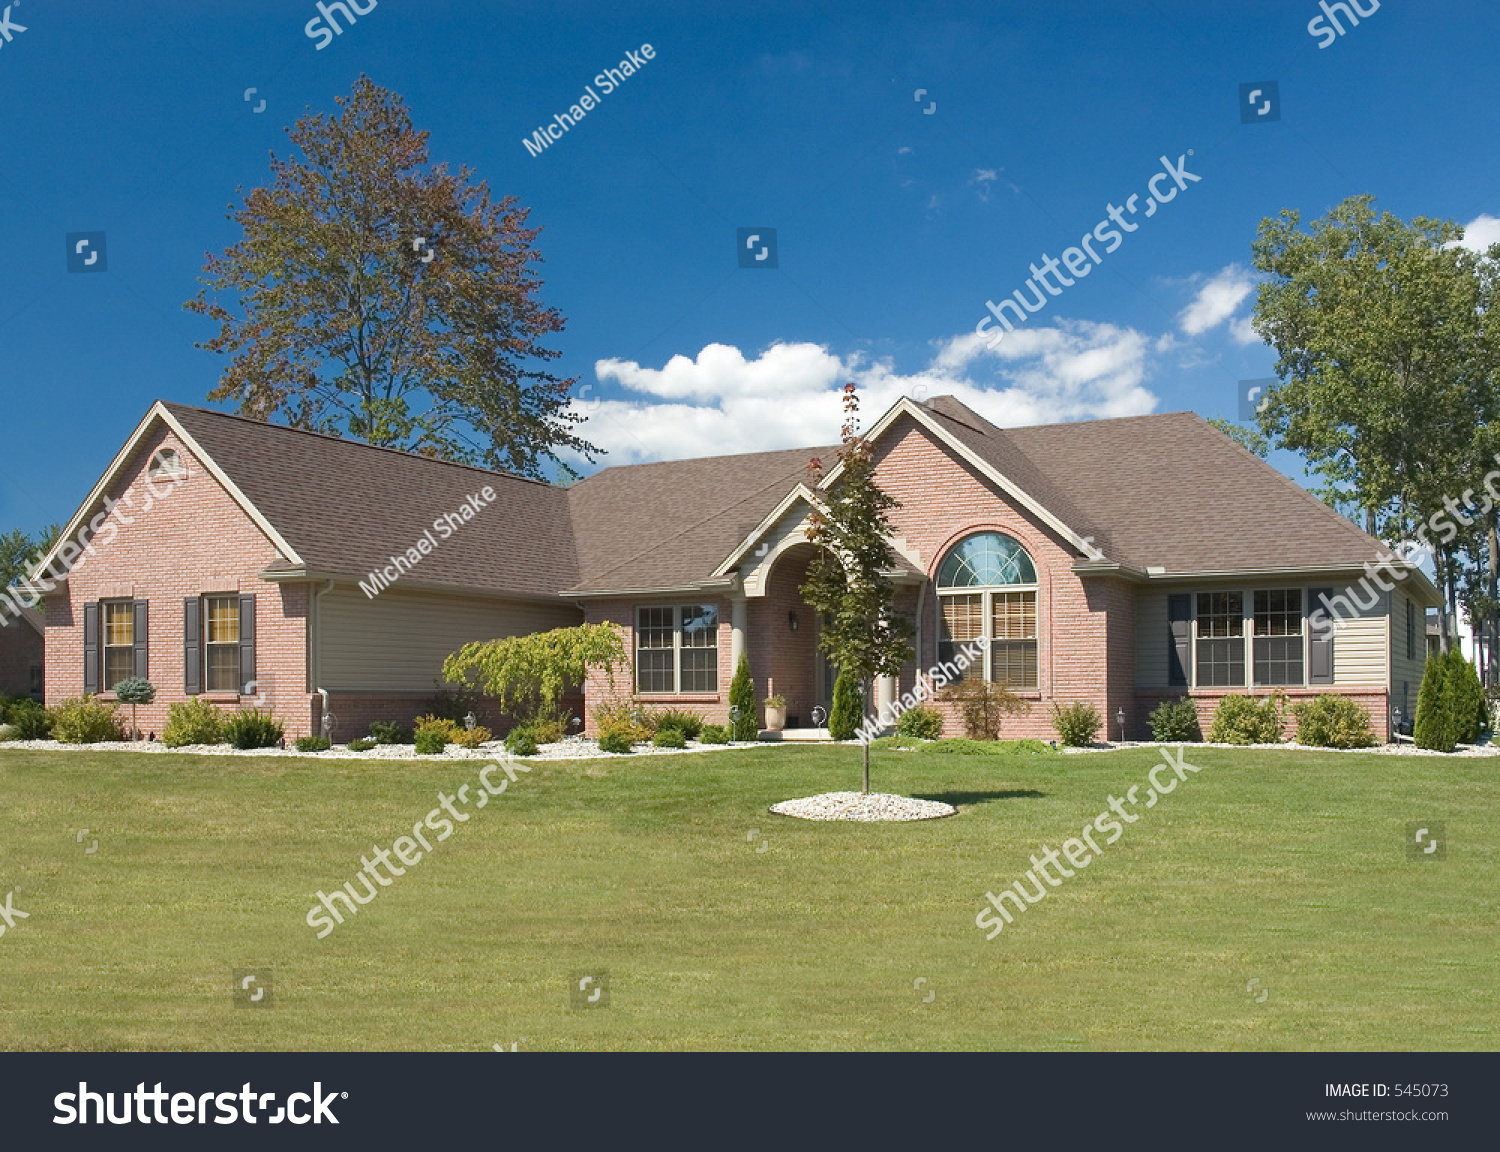 Brick ranch home stock photo 545073 shutterstock - What is a ranch house ...